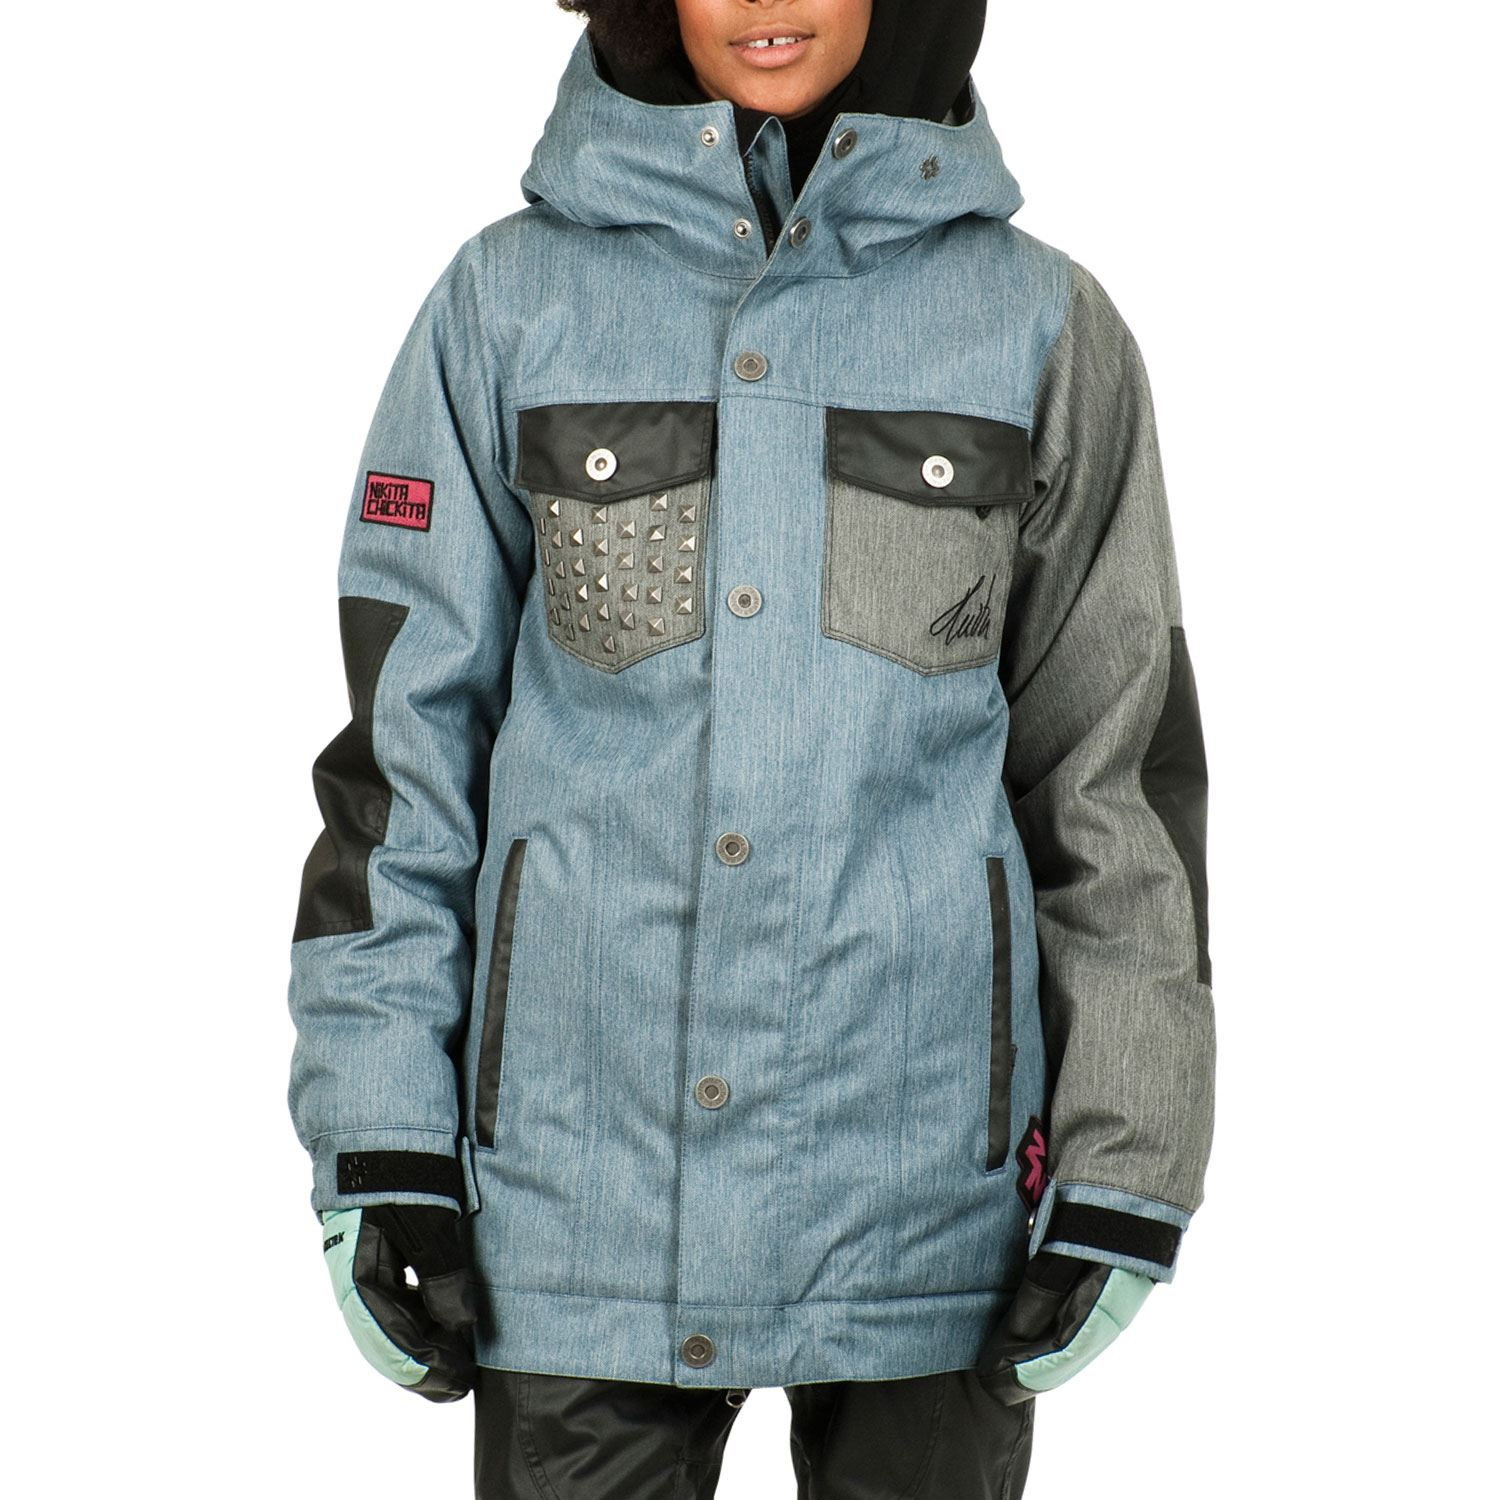 Purchase best quality womens snowboarding jackets